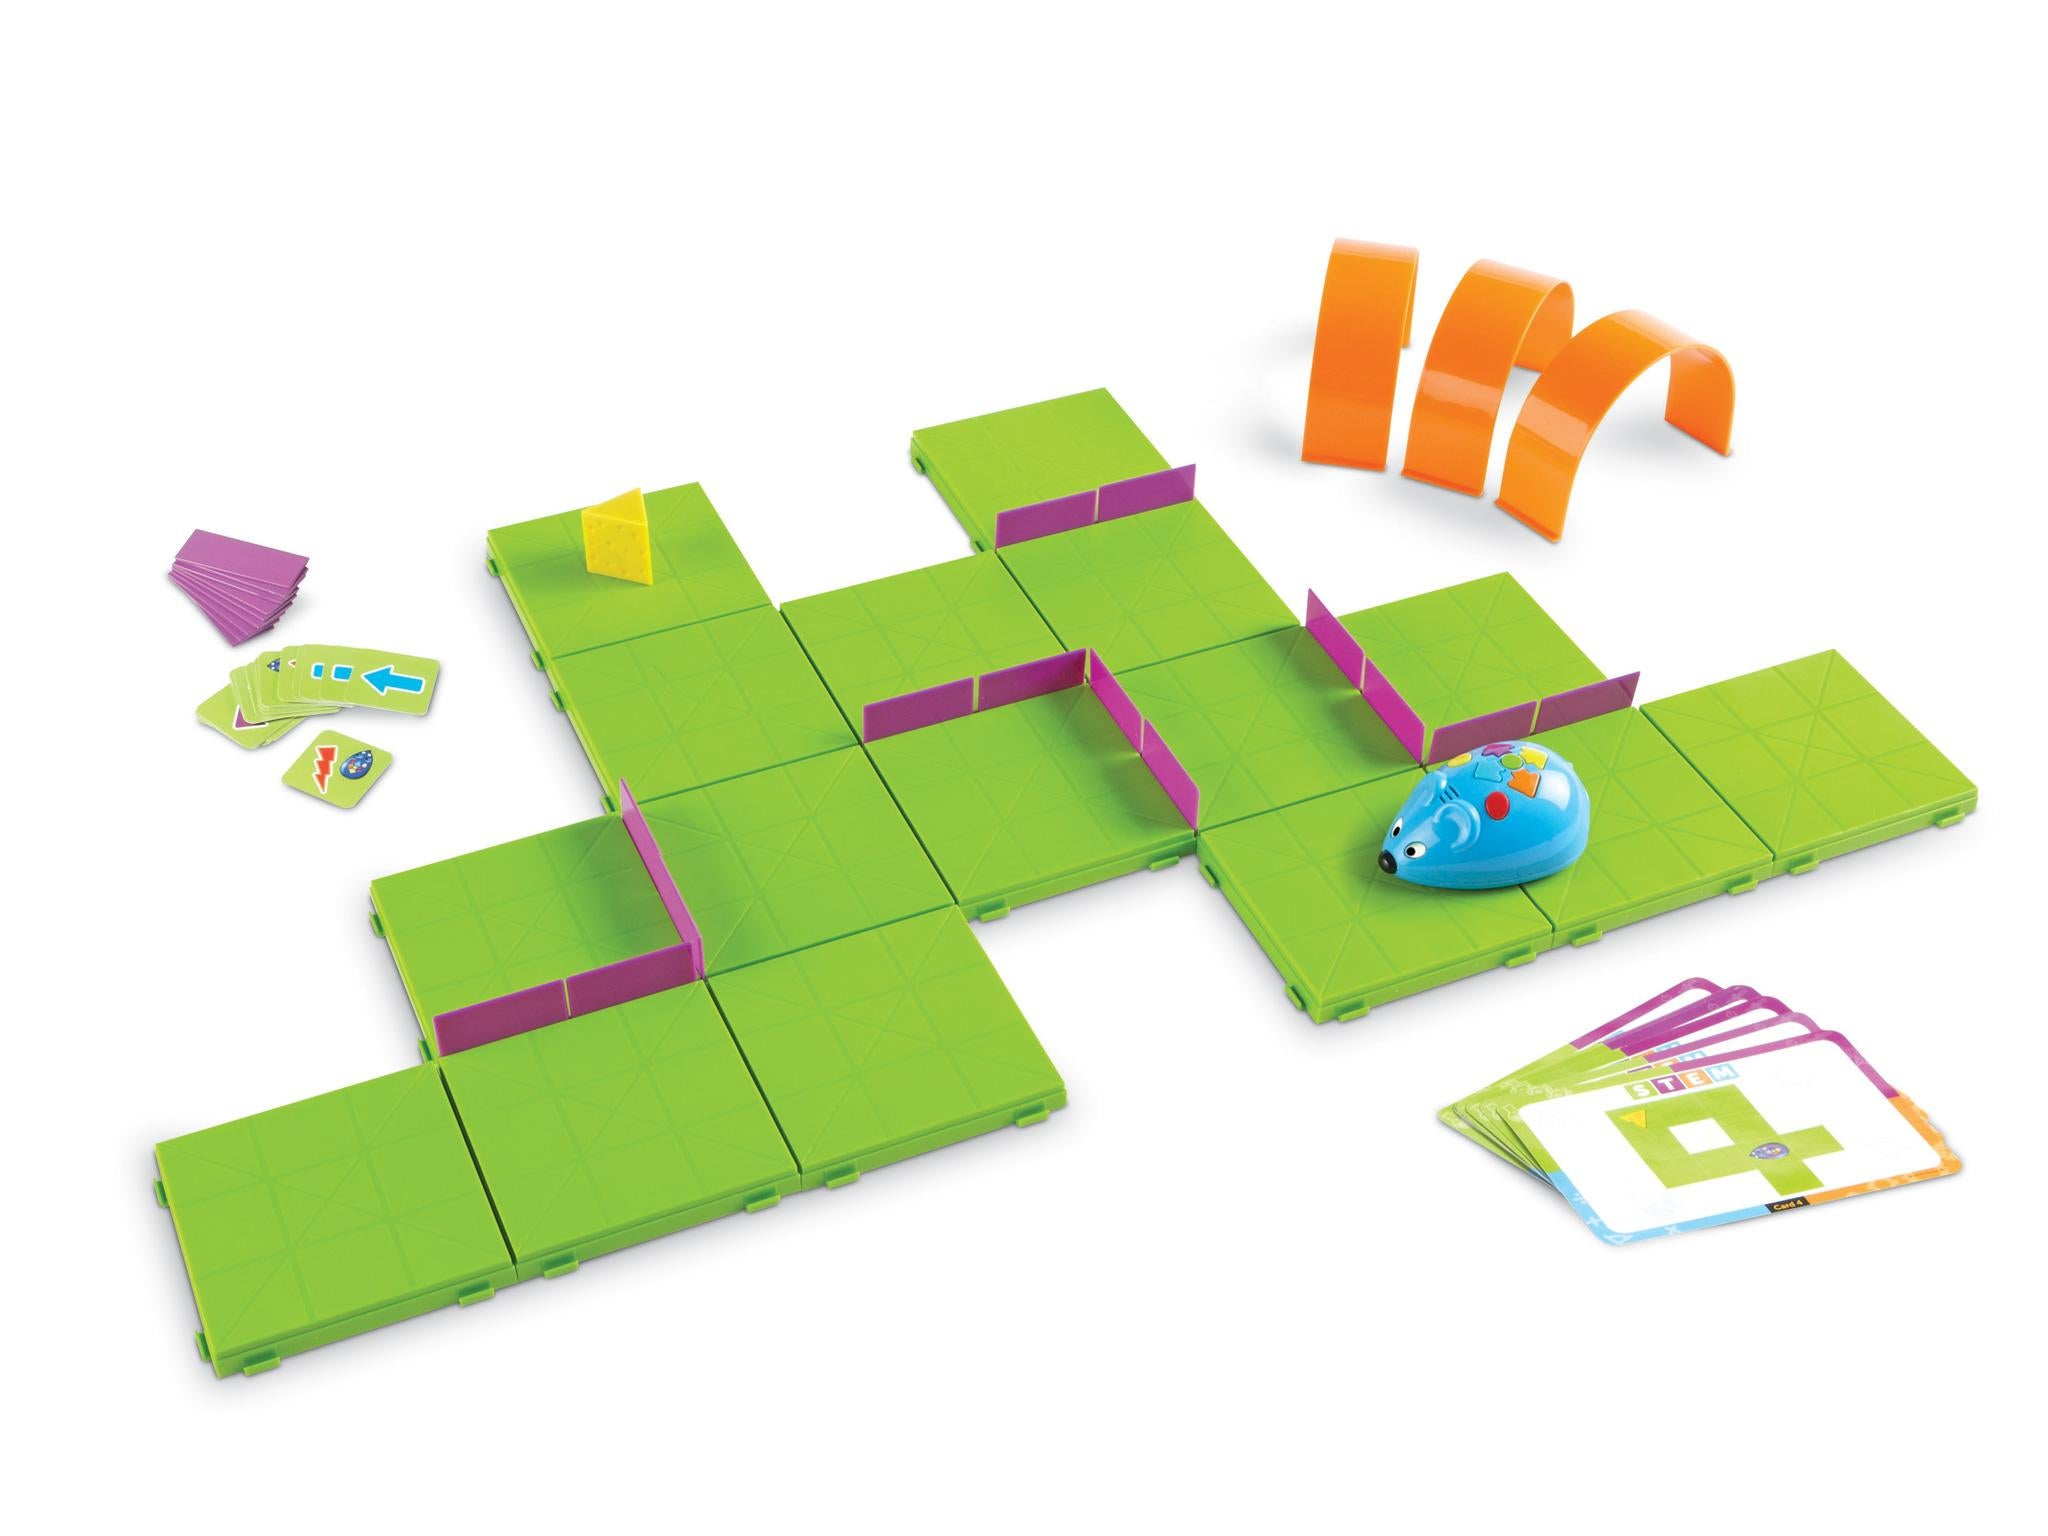 10 best coding toys the independent this brightly coloured kit requires the user to build sequences using playing cards to lead their rodent through solutioingenieria Choice Image